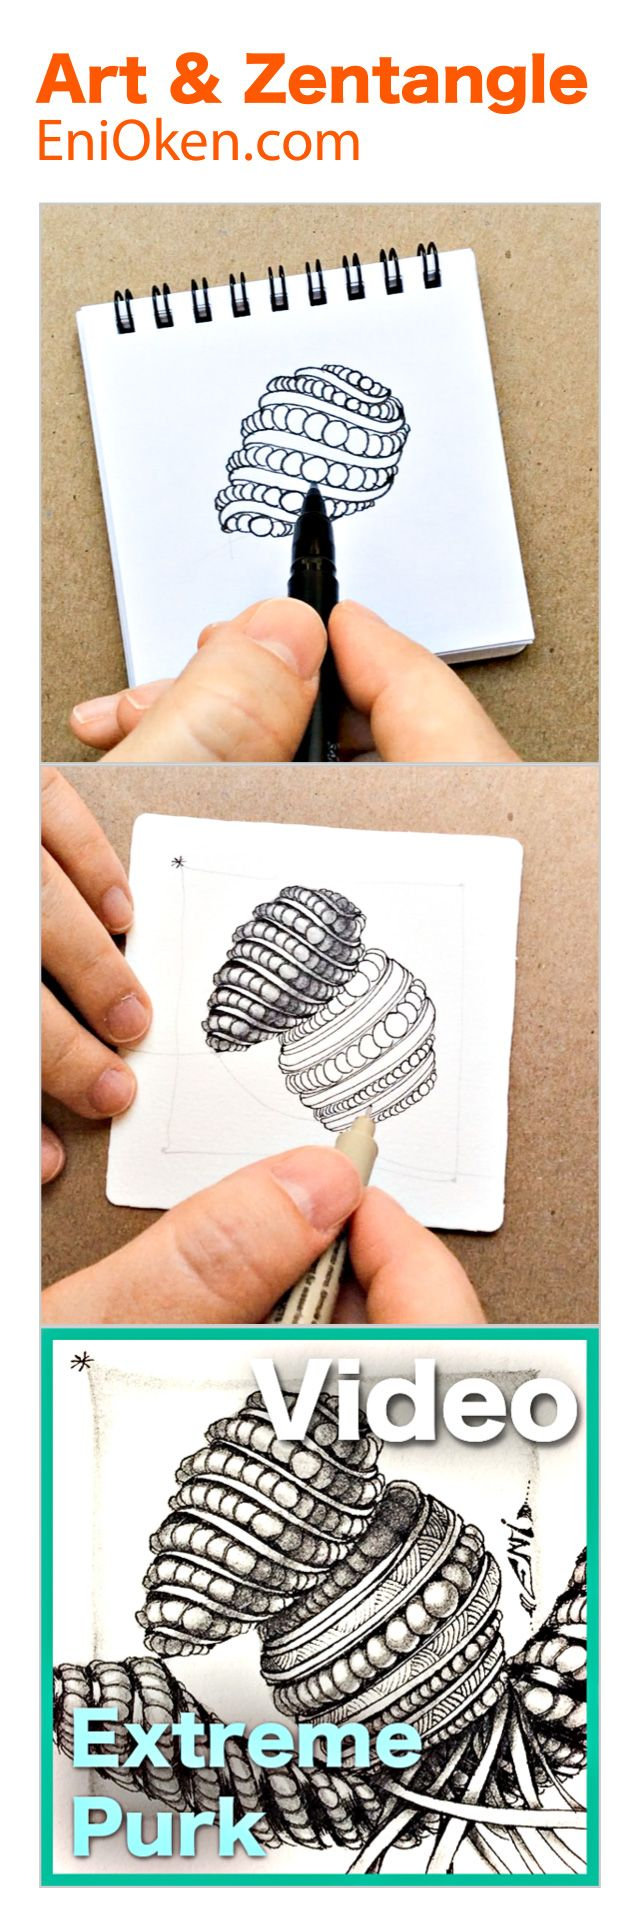 3D Shading in Zentangle still tricky? Purk extreme in 3D video. • enioken.com